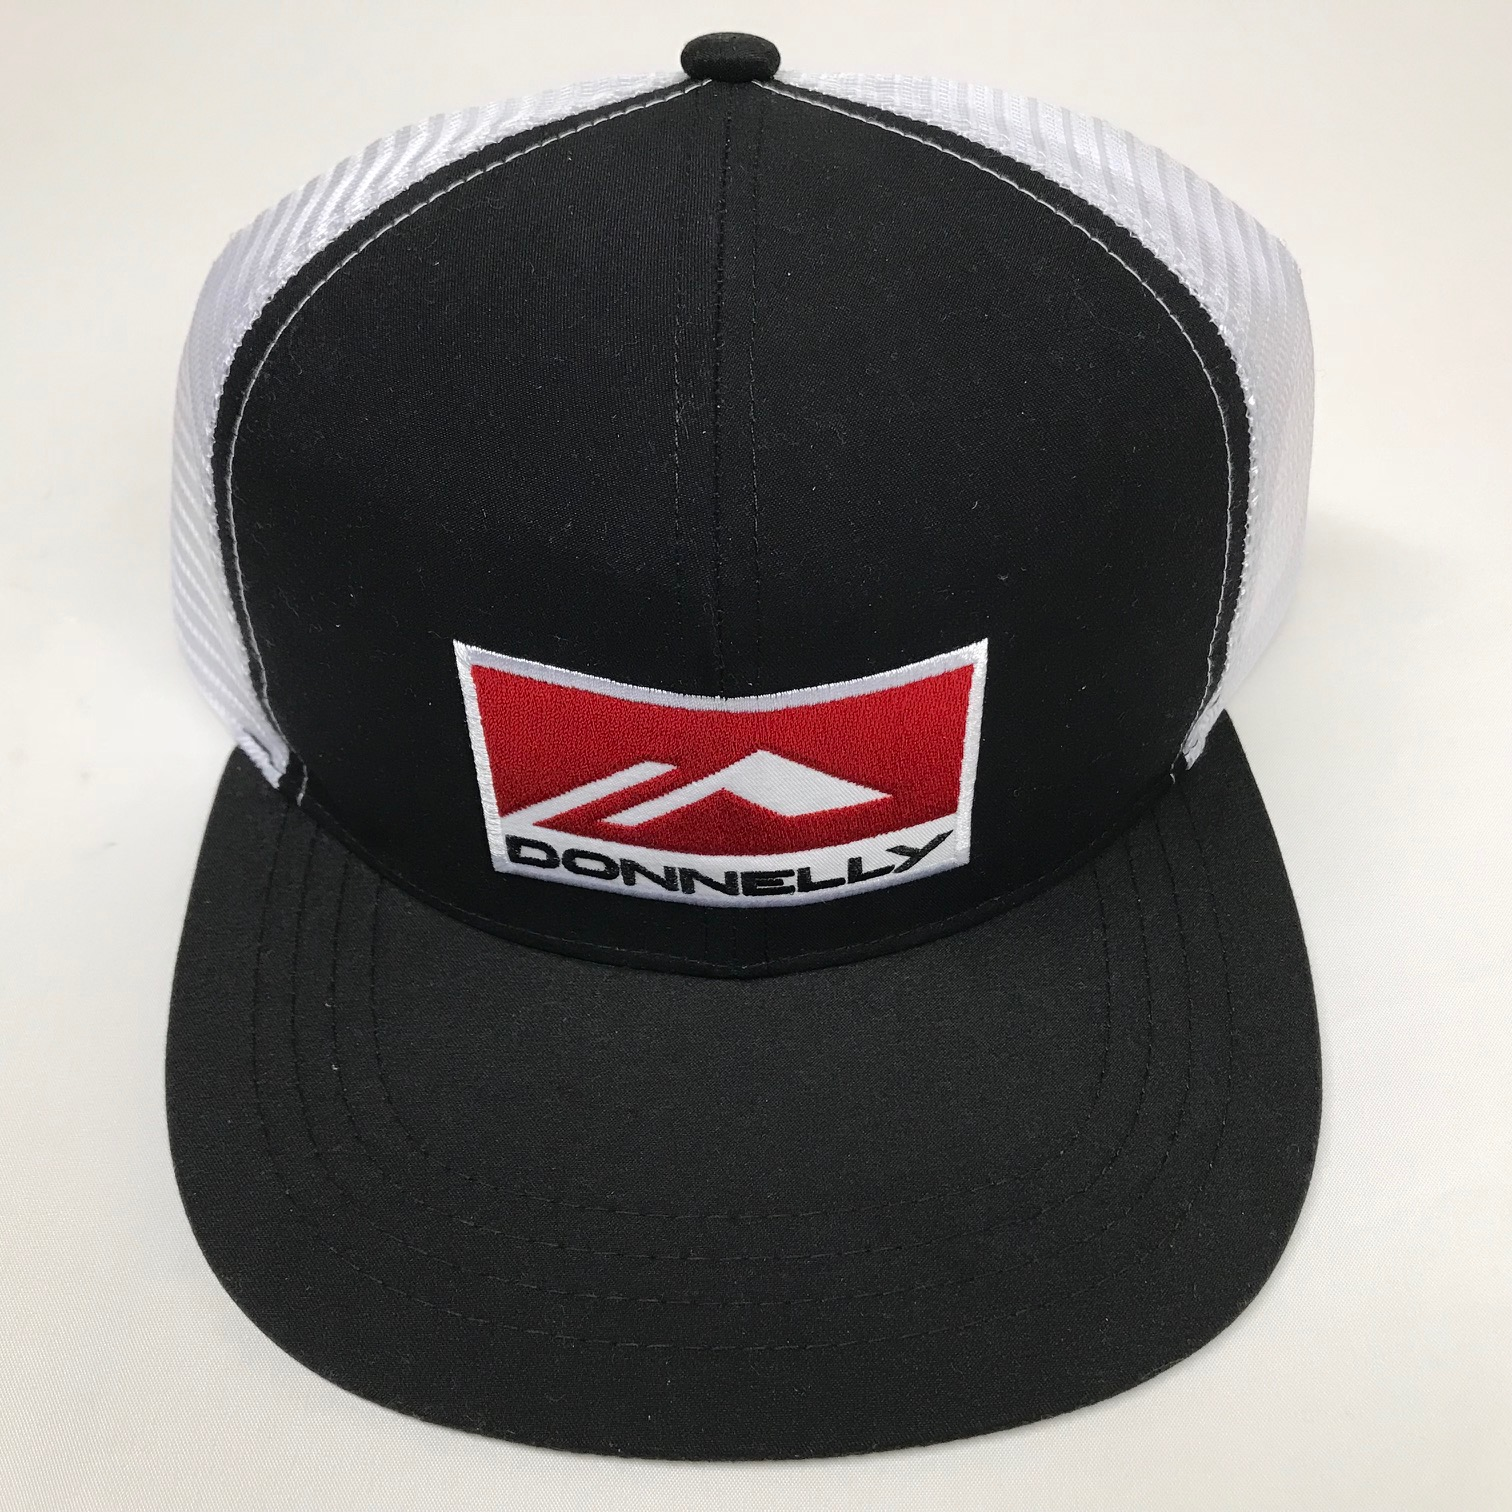 Donnelly Trucker Hat, Flat Bill, Black THUMBNAIL